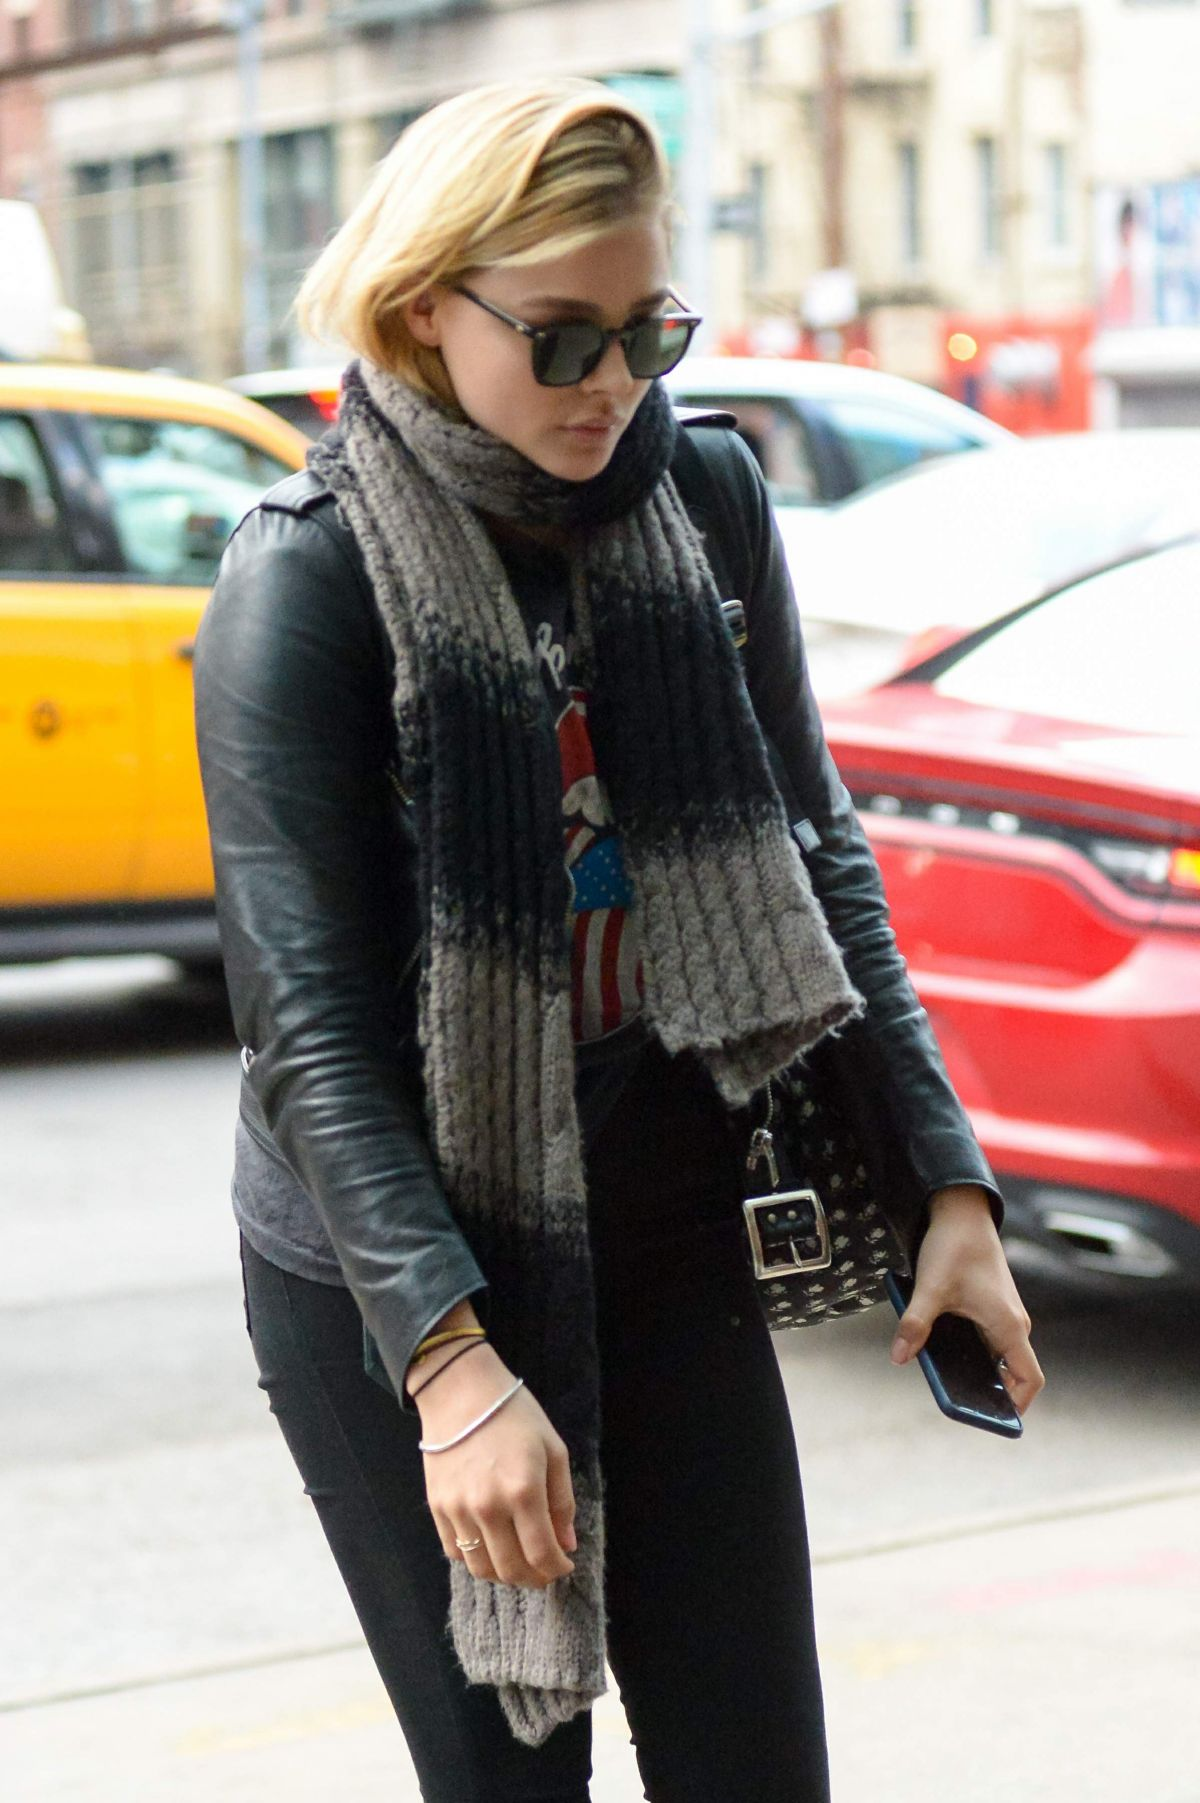 CHLOE MORETZ Out and About in New York 03/25/2016